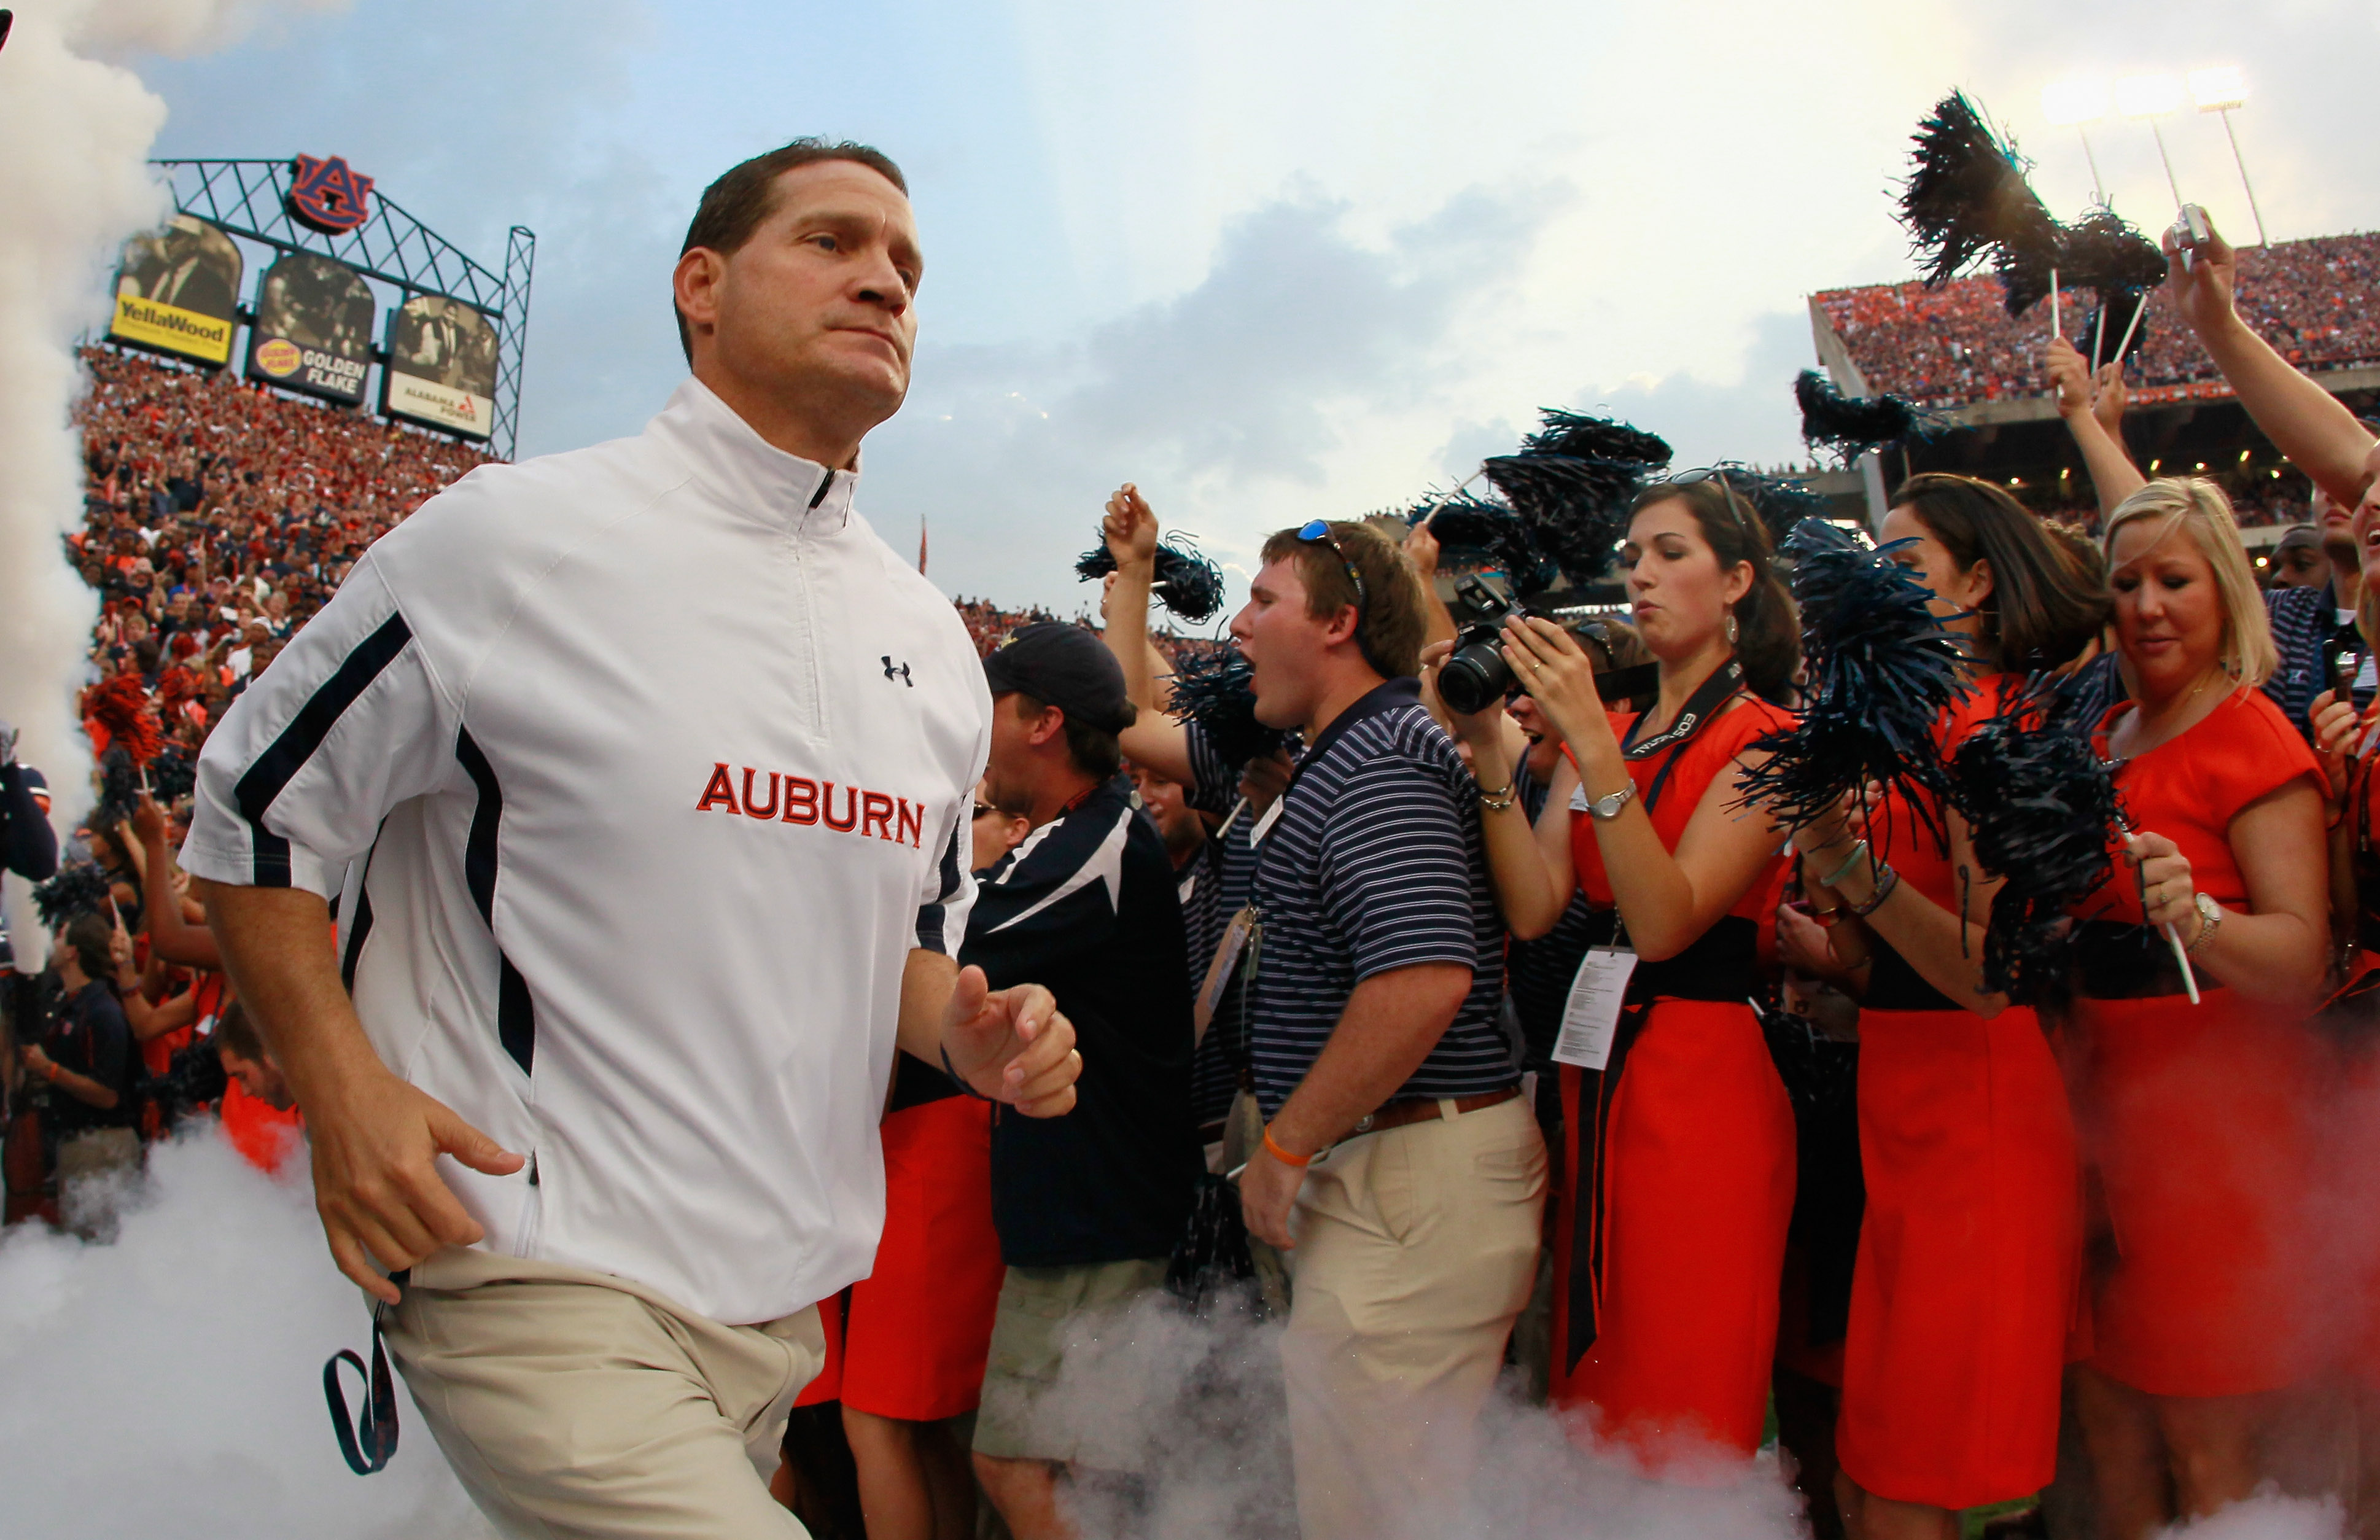 AUBURN, AL - SEPTEMBER 18:  Head coach Gene Chizik of the Auburn Tigers leads his team onto the field to face the Clemson Tigers at Jordan-Hare Stadium on September 18, 2010 in Auburn, Alabama.  (Photo by Kevin C. Cox/Getty Images)